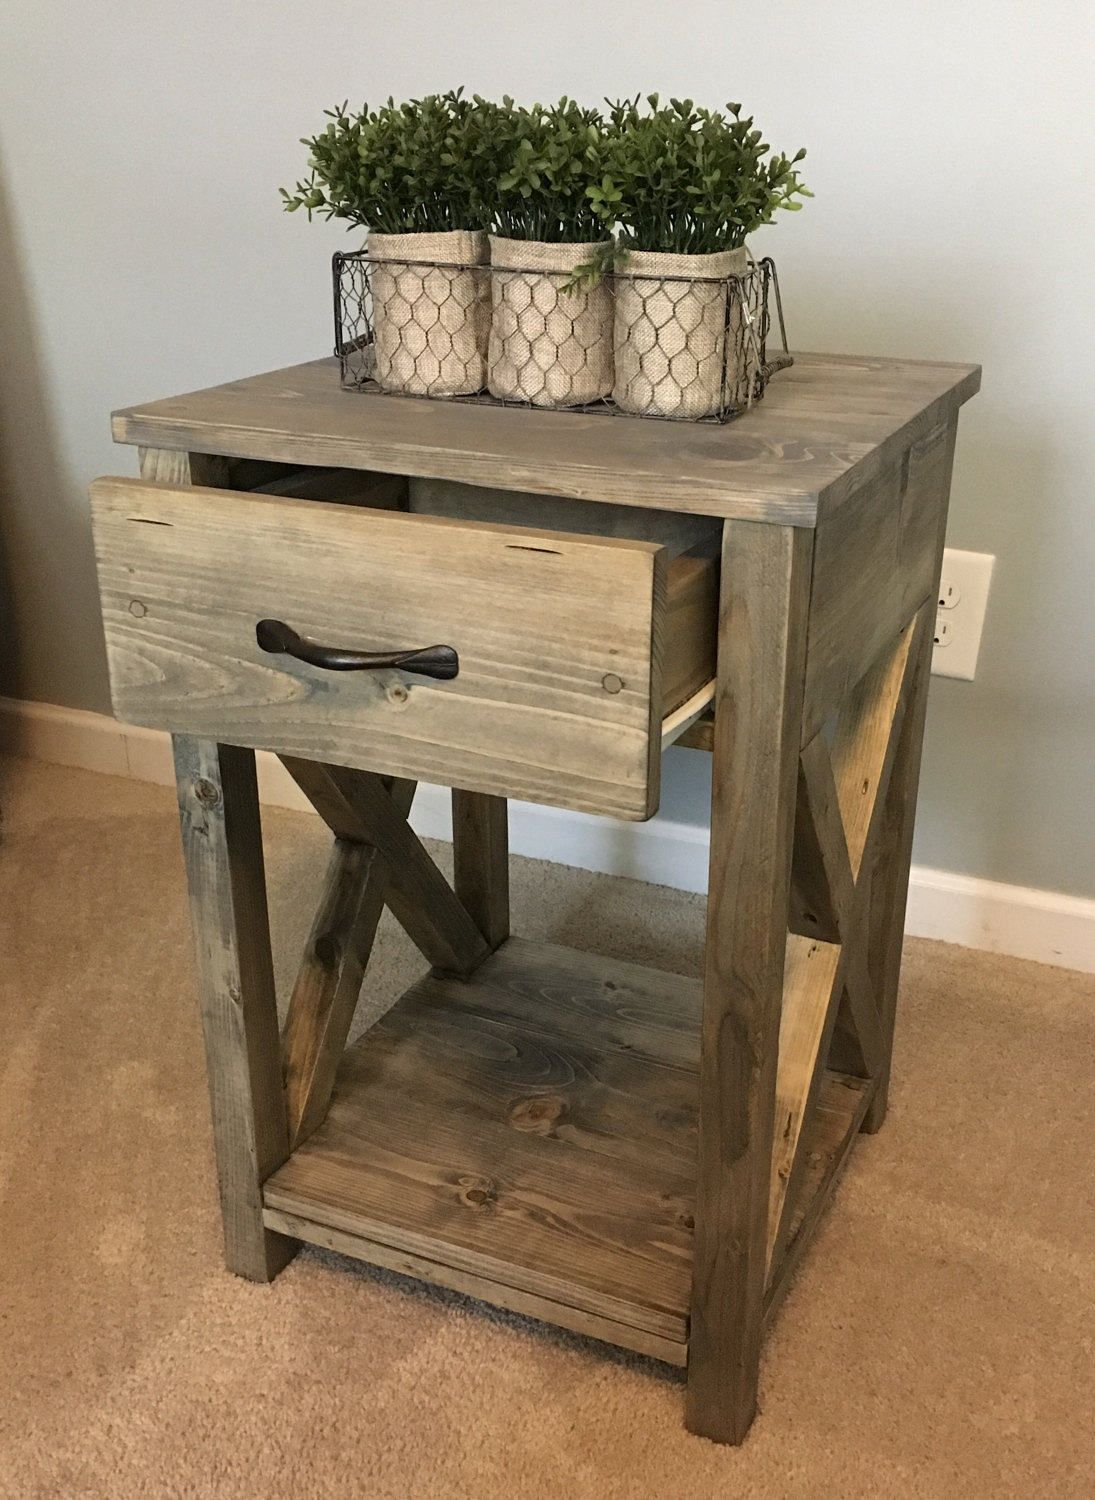 SALE Nightstand /side table/ end table/ for the home/ bedroom/